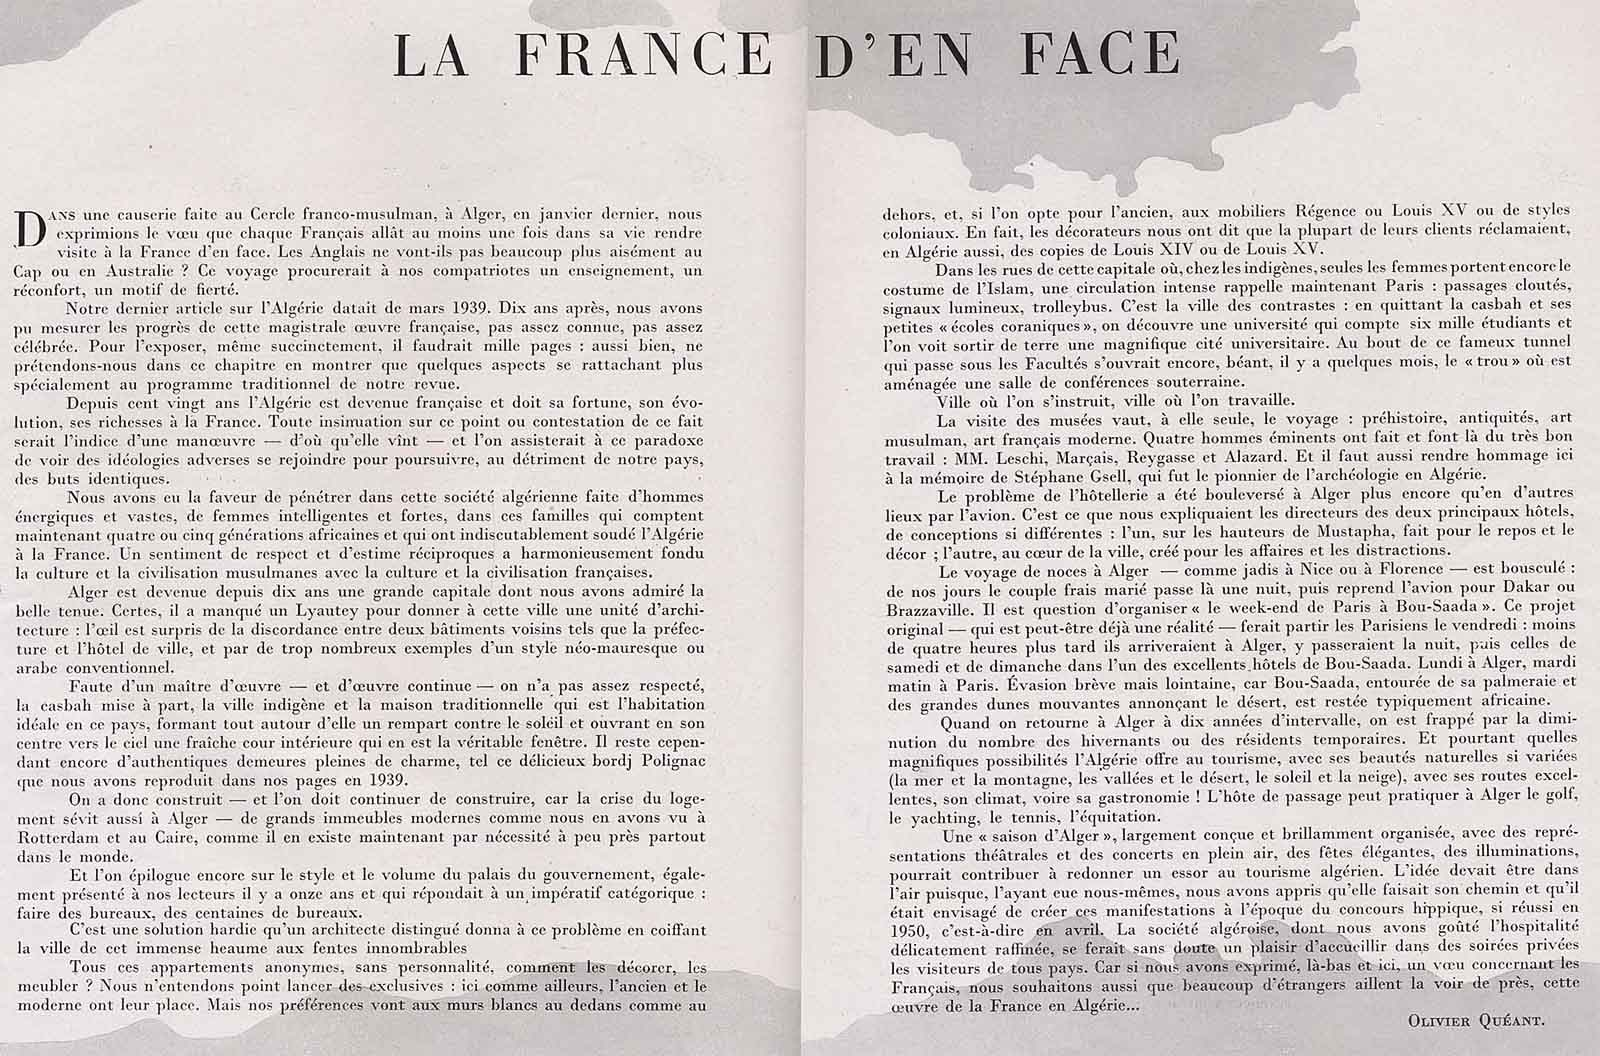 La France d'en face - article de Plaisir de France 1950